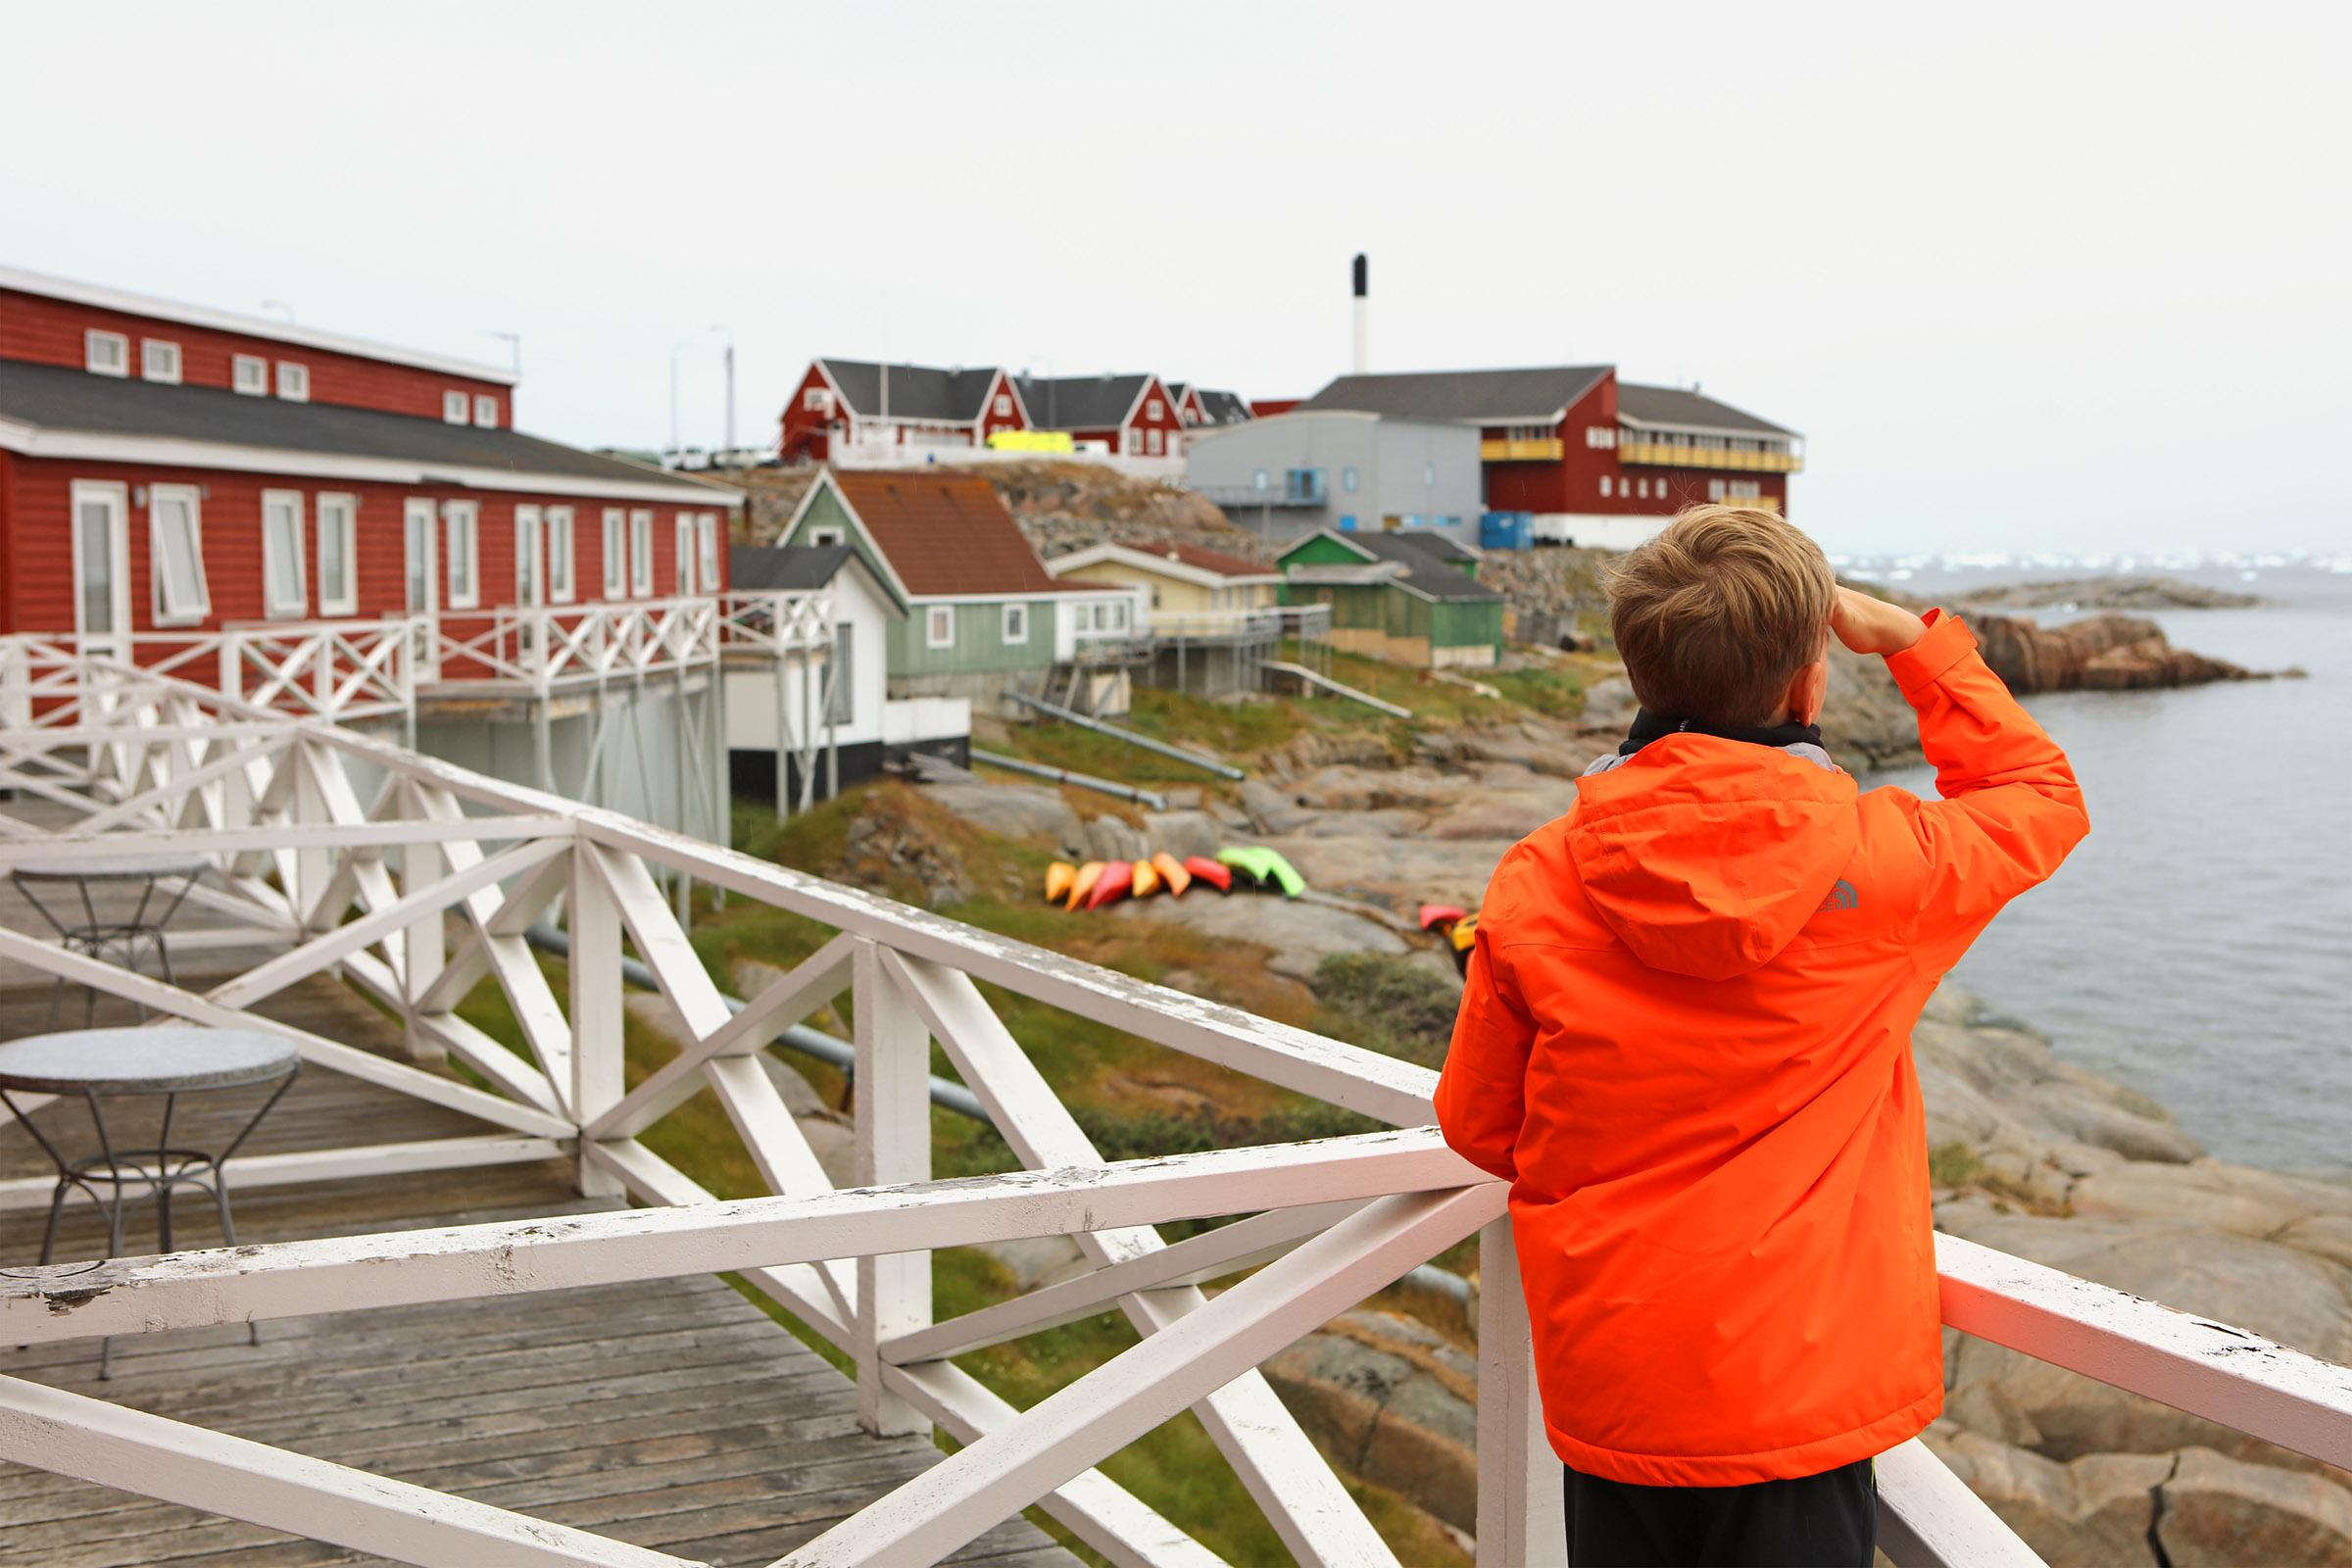 Visiting Greenland with kids - book hotels in advance. Photo by Jurga Rubinovaite.